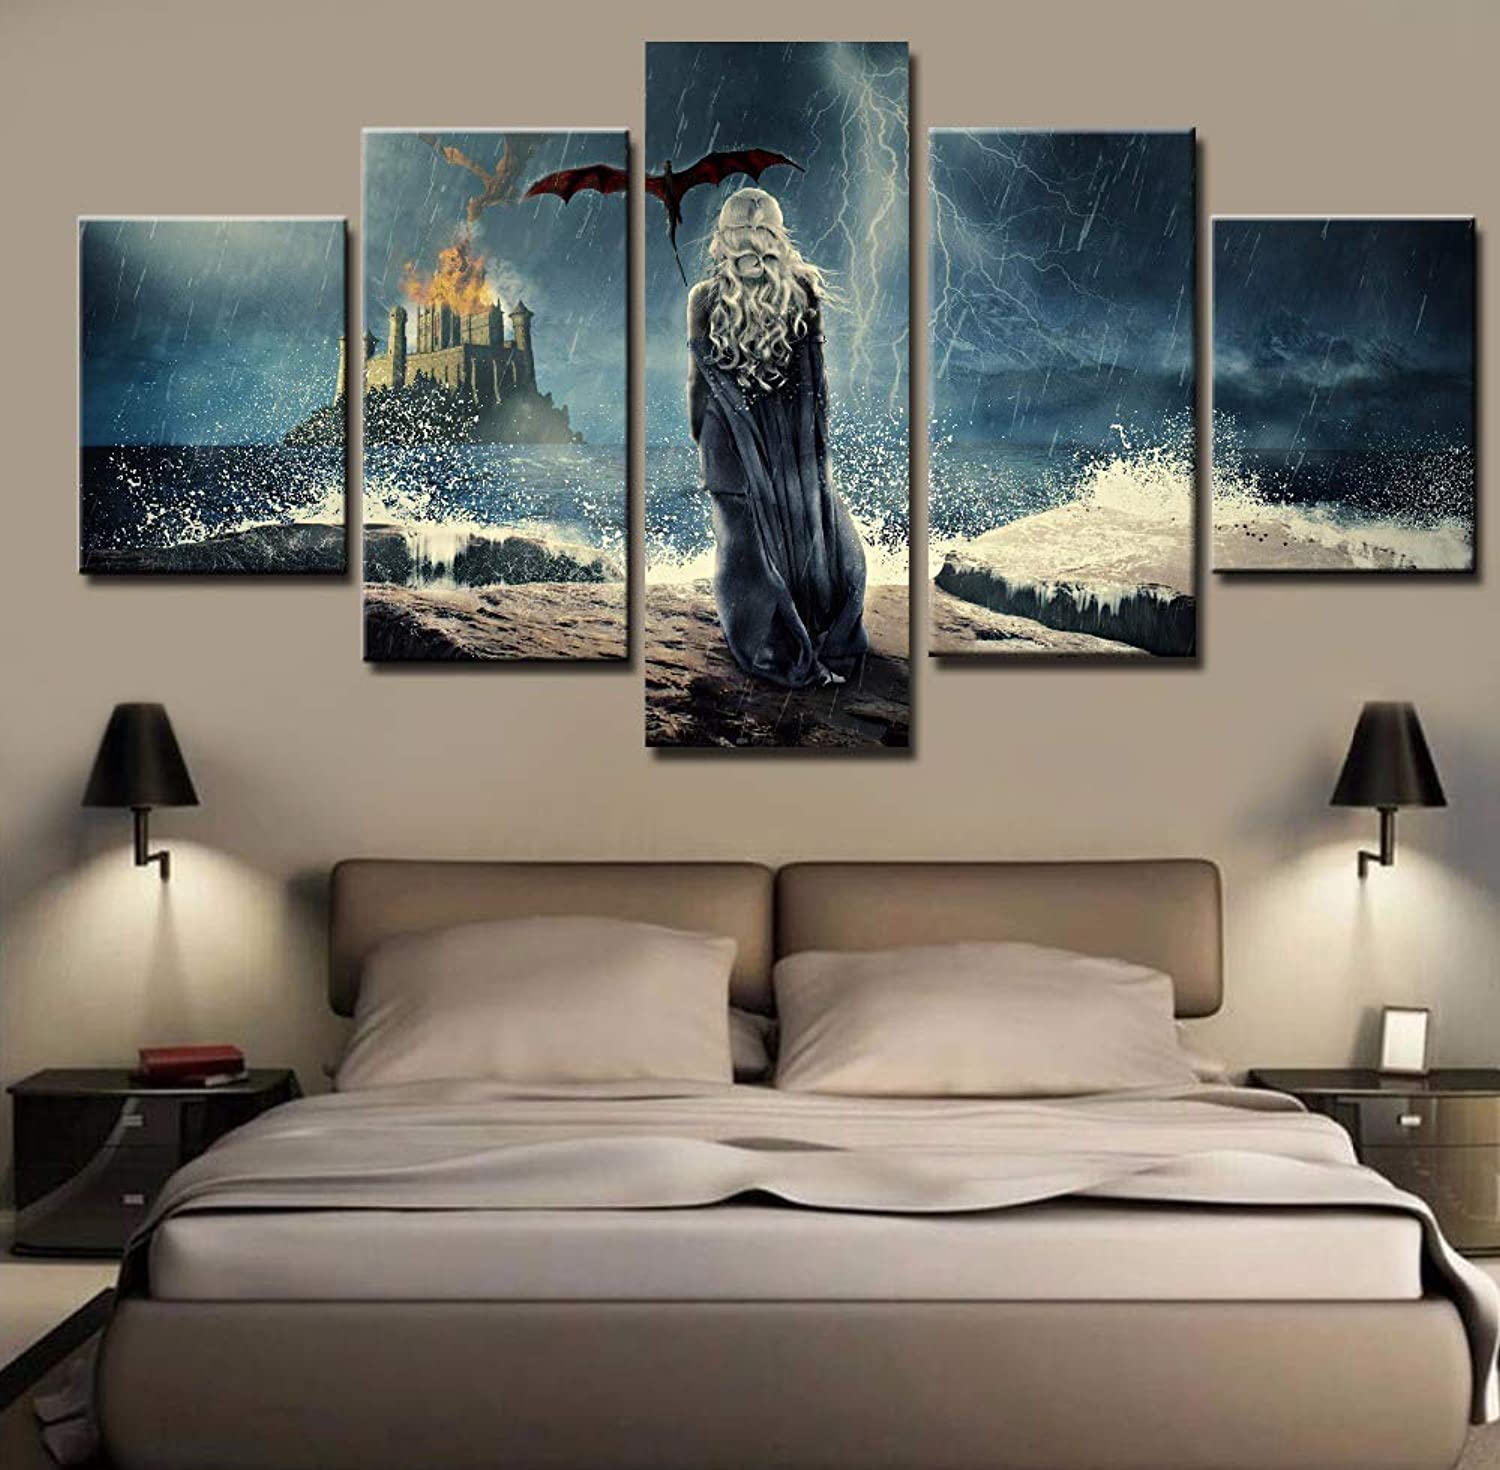 Modern HD Printed Poster 5 Panels Game of Thrones Pictures Wall Art Canvas Living Room Home Decor